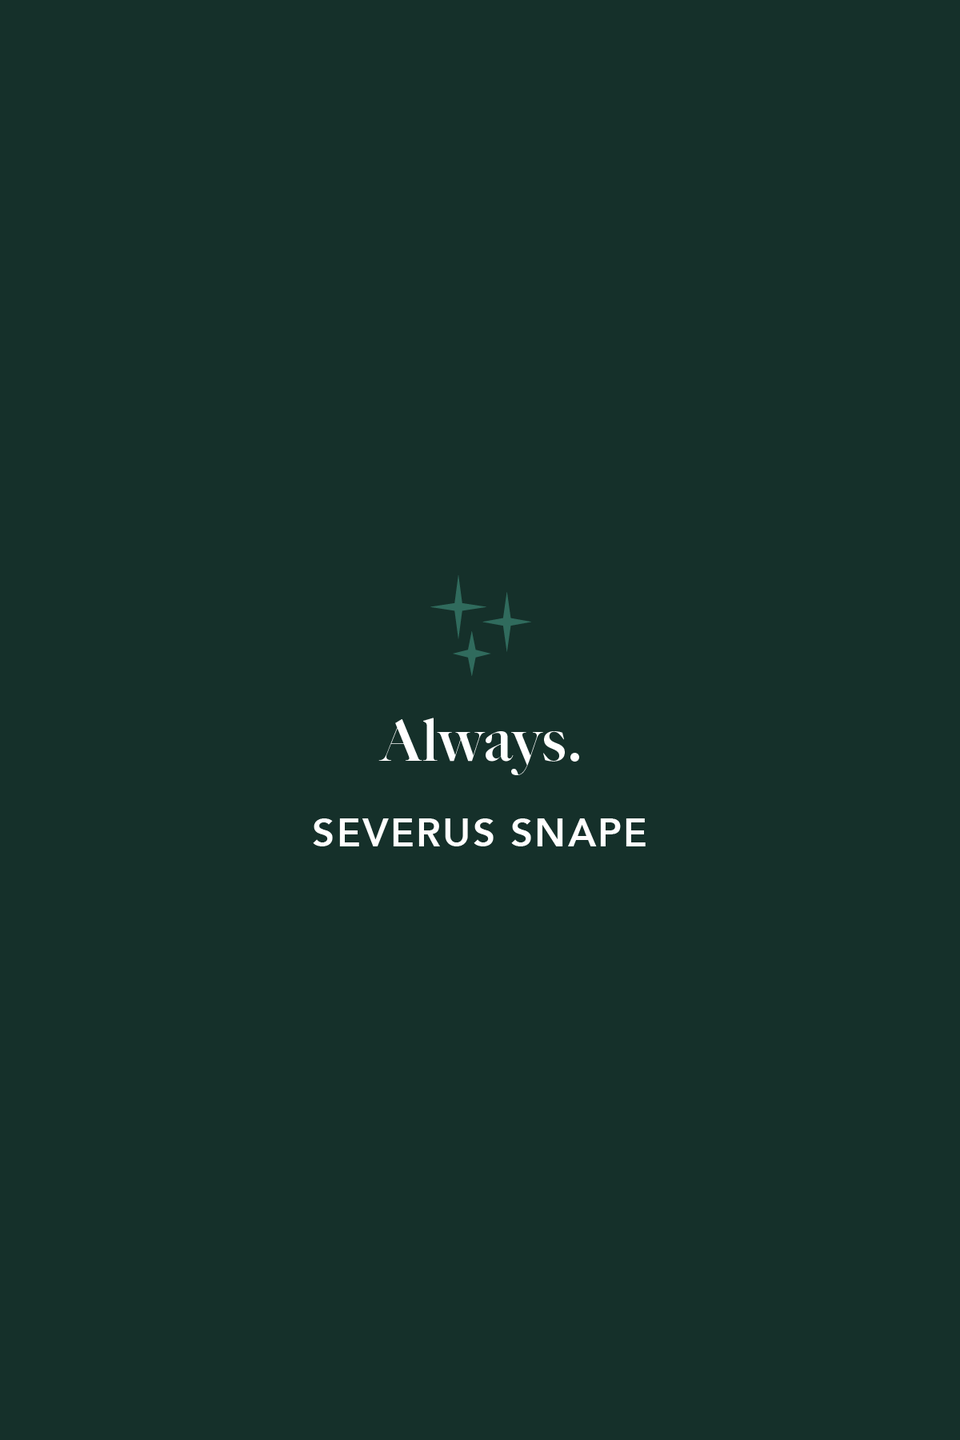 """<p>Though many thought Snape was the enemy for the majority of the series, in <em><a href=""""https://www.amazon.com/Harry-Potter-Deathly-Hallows-Book/dp/0545139708?tag=syn-yahoo-20&ascsubtag=%5Bartid%7C10072.g.32302254%5Bsrc%7Cyahoo-us"""" rel=""""nofollow noopener"""" target=""""_blank"""" data-ylk=""""slk:The Deathly Hallows"""" class=""""link rapid-noclick-resp"""">The Deathly Hallows</a></em> we learned that he'd been helping Harry all along. As he'd """"always"""" loved the boy's mother, Lily. That one word turned him into a hero, and is the quote that's most renowned amongst Potterheads.</p>"""